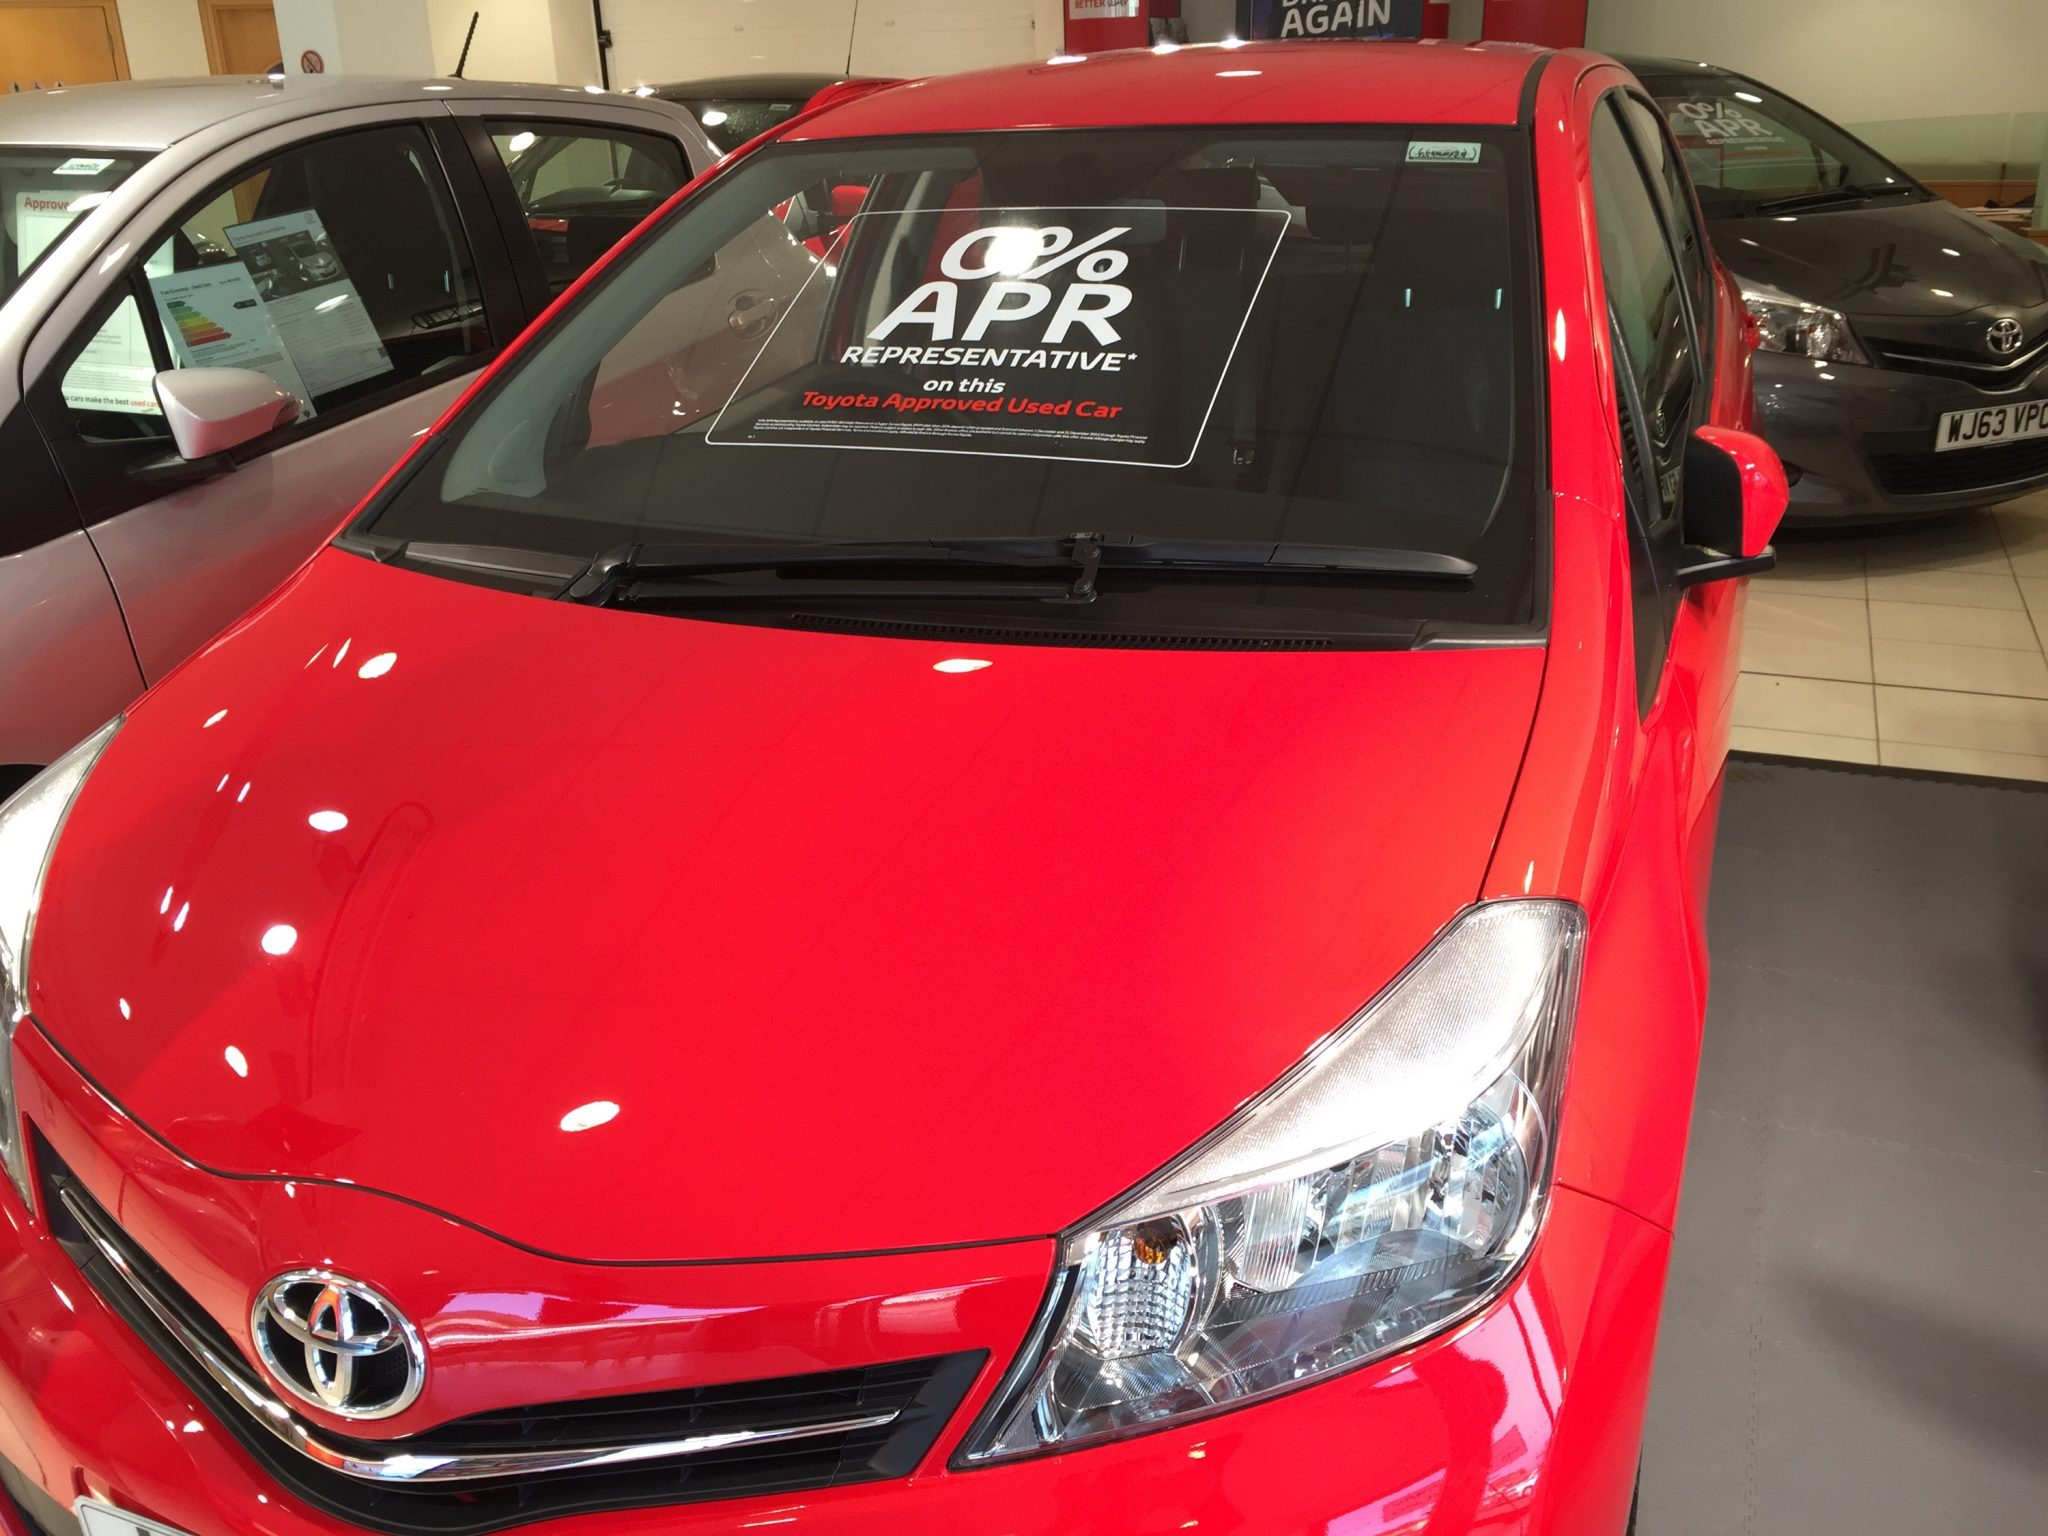 Toyota Yaris Windscreen Chip Repair